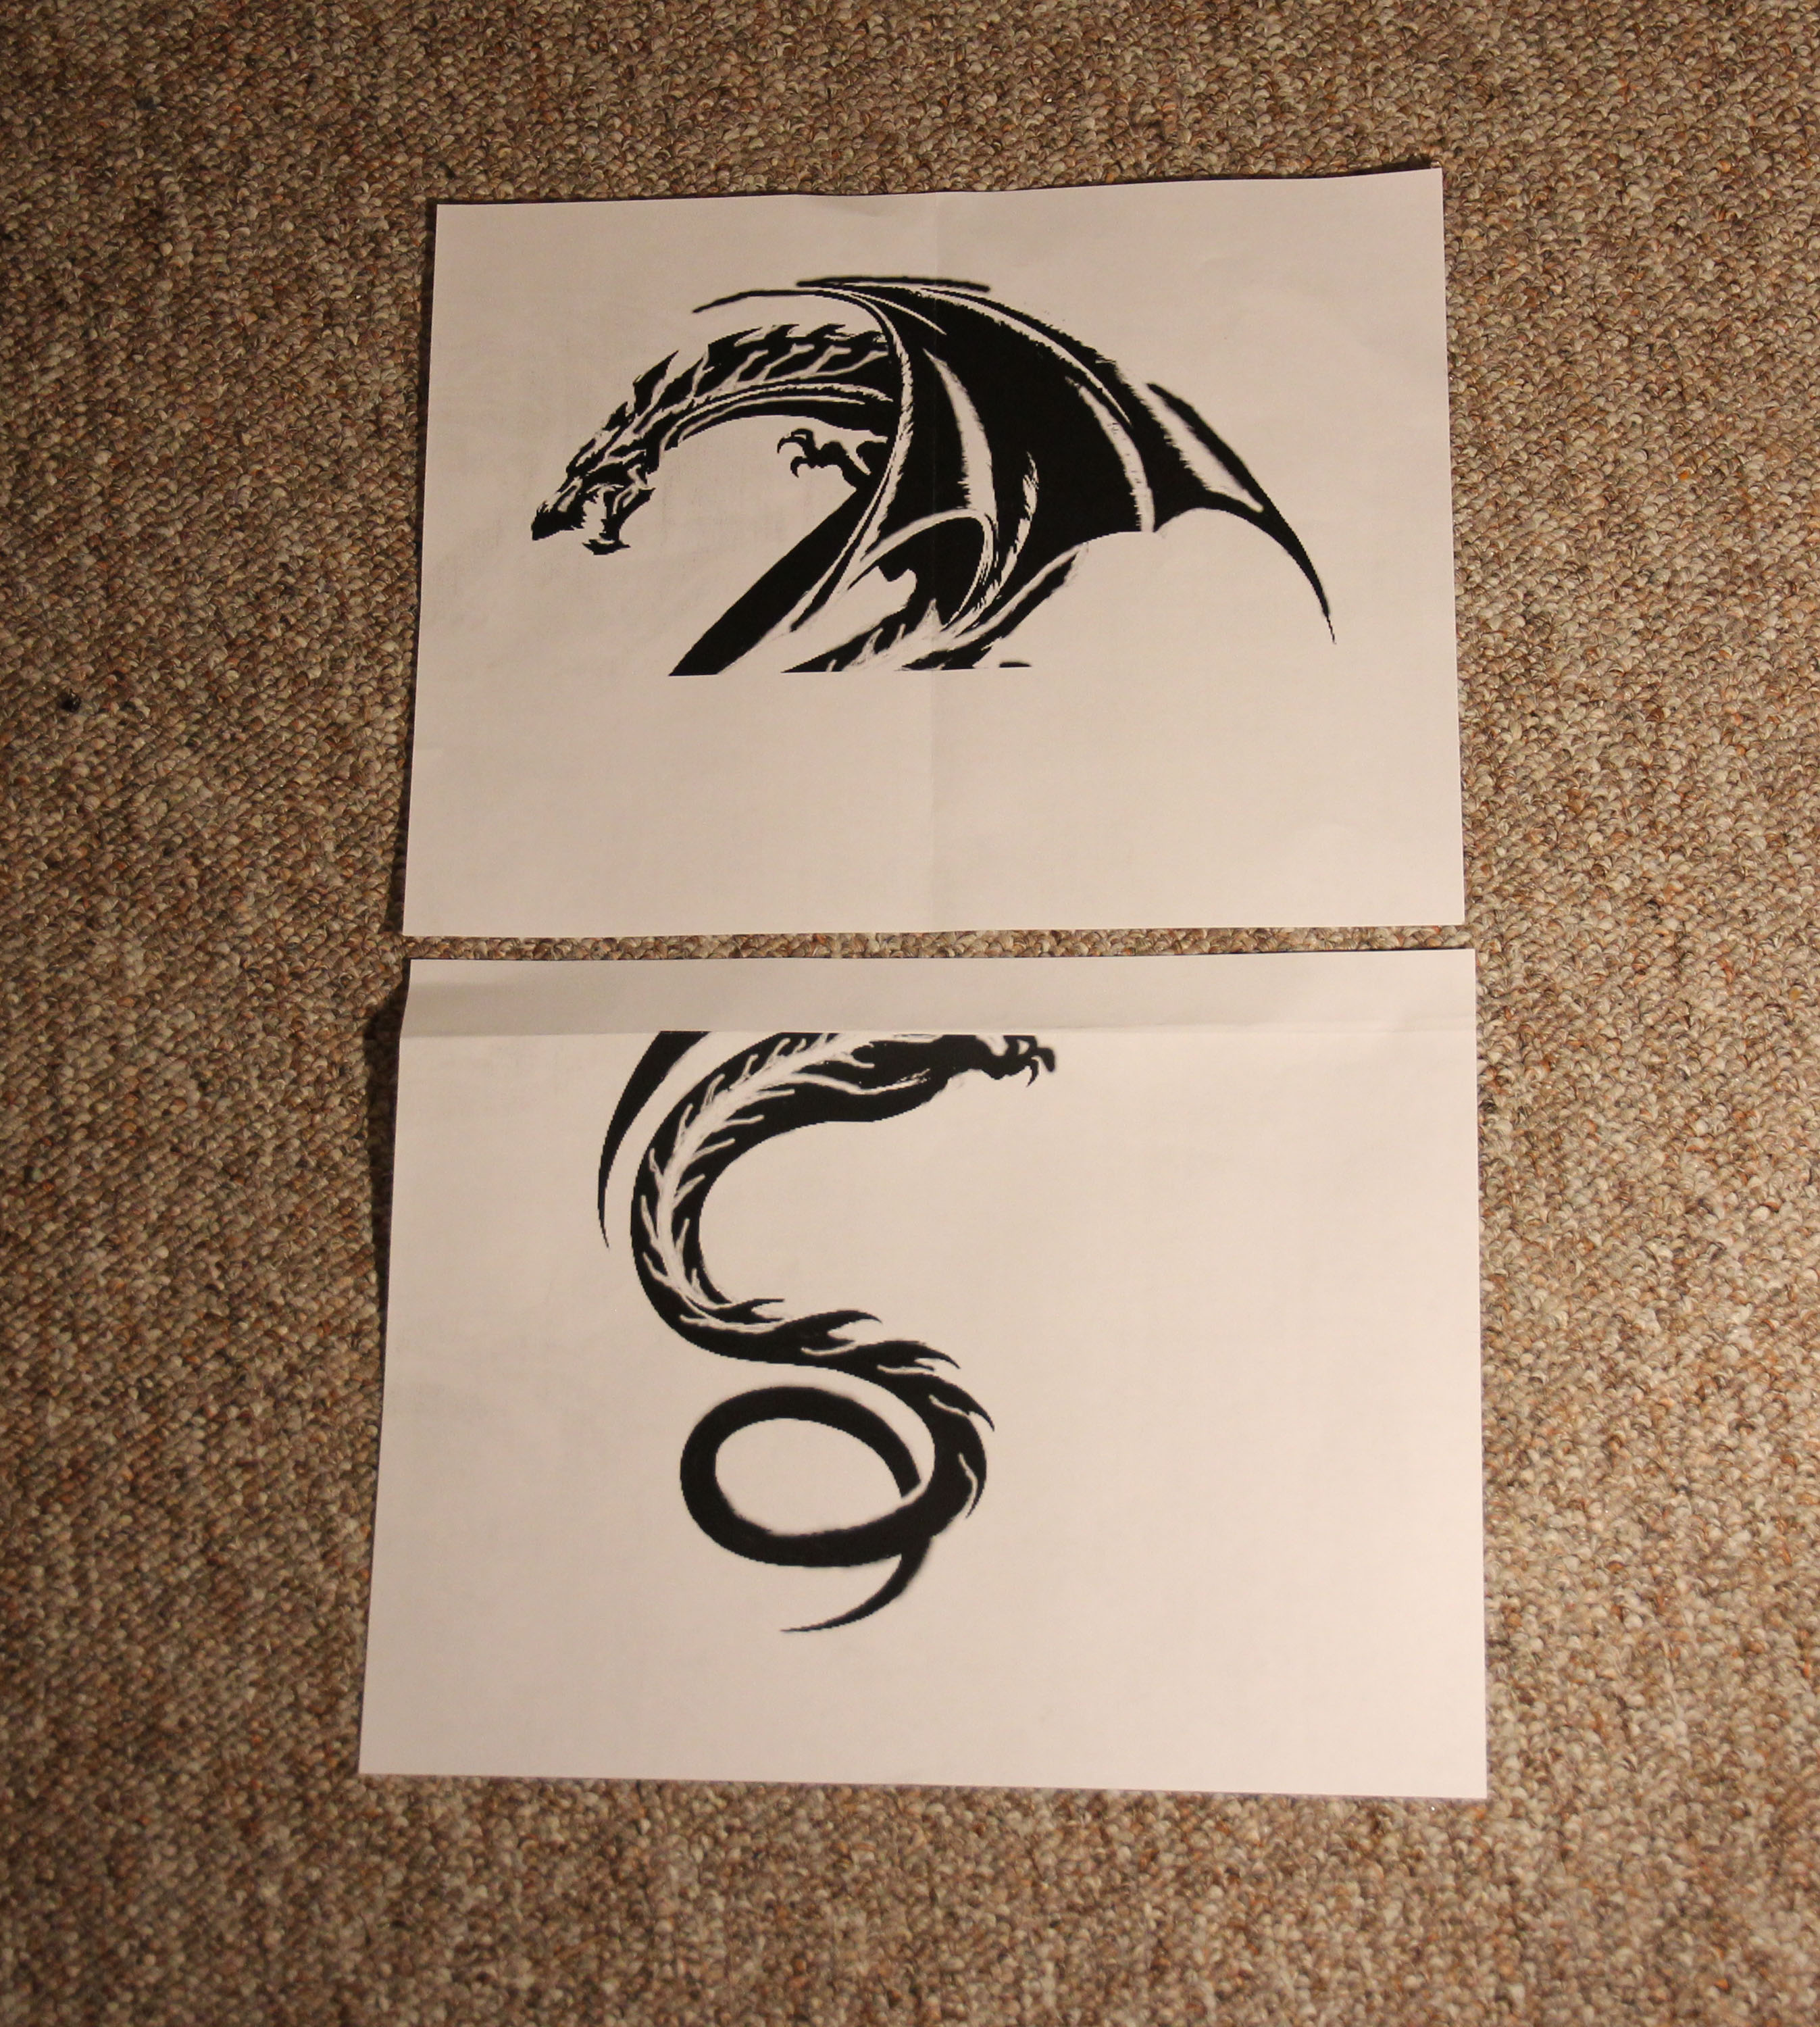 Picture of Tattoos - Tracing the Image and Cutting Out the Stencil